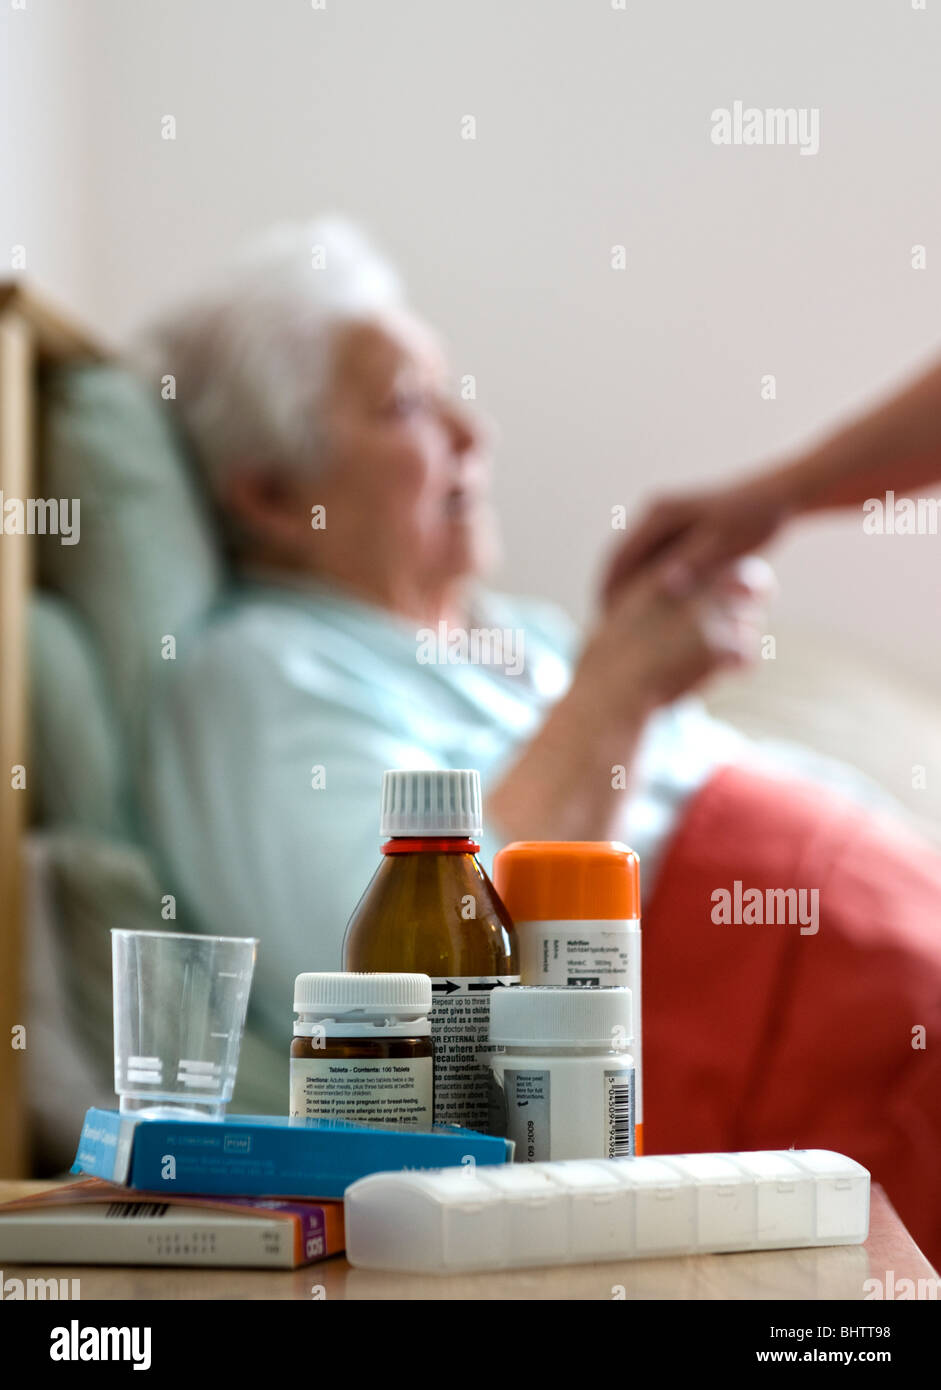 Elderly lady in her bedroom with carer holding her hand, variety of medication in foreground - Stock Image